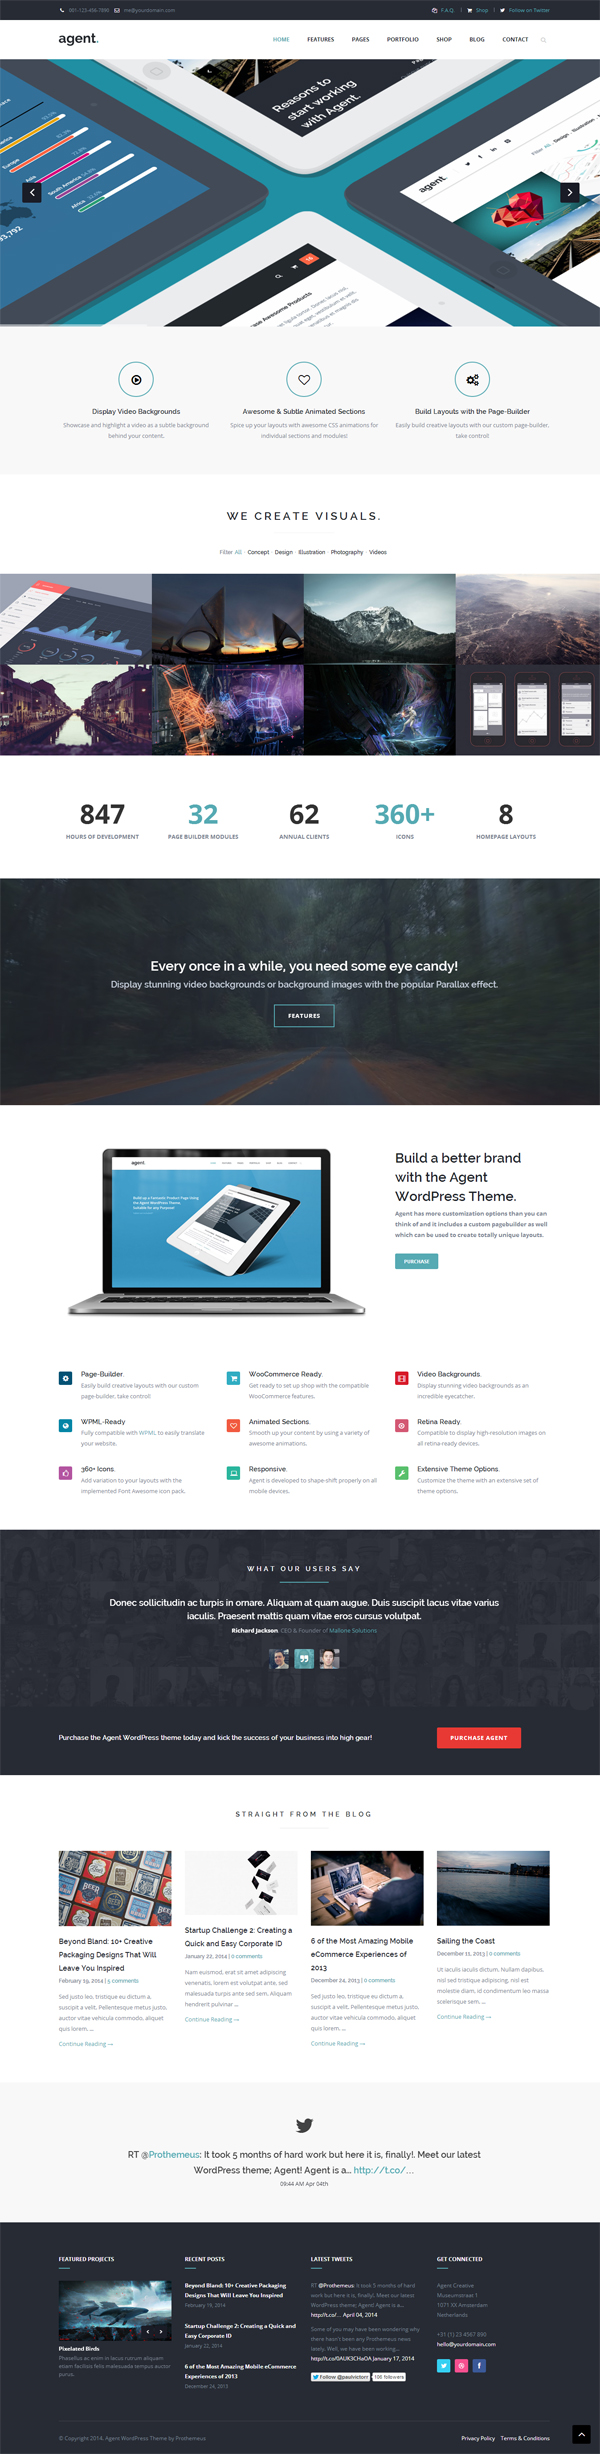 Agent - A Creative Multi-Purpose WordPress Theme